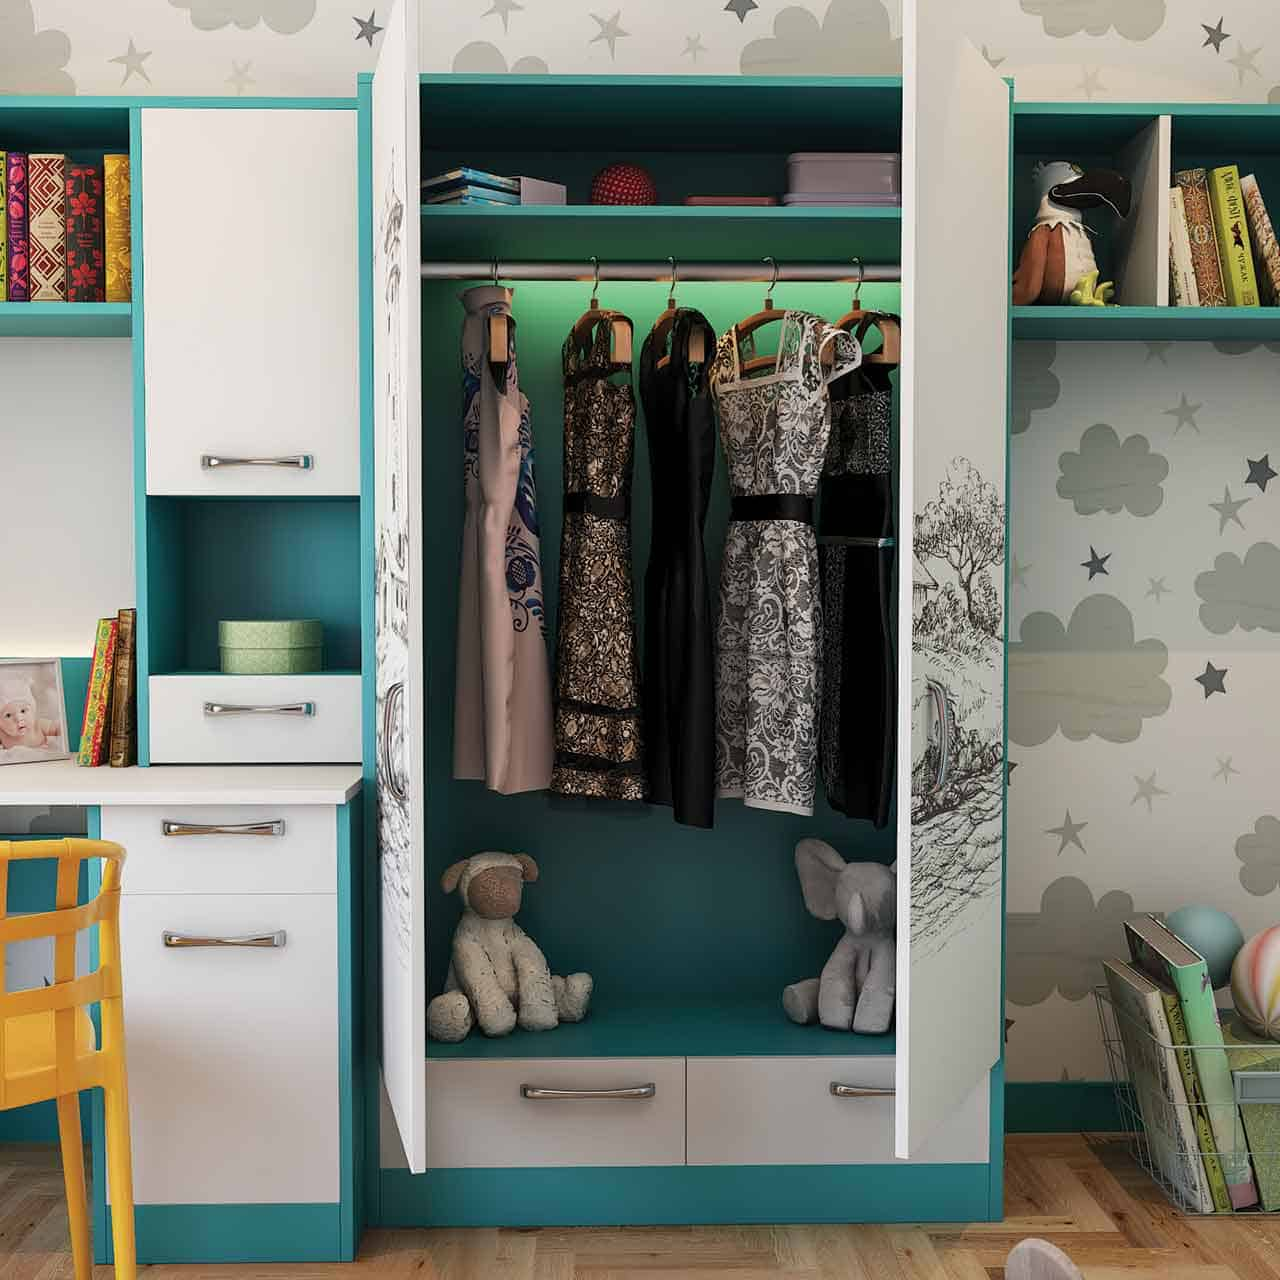 Storage Components that Make Organizing a Delight